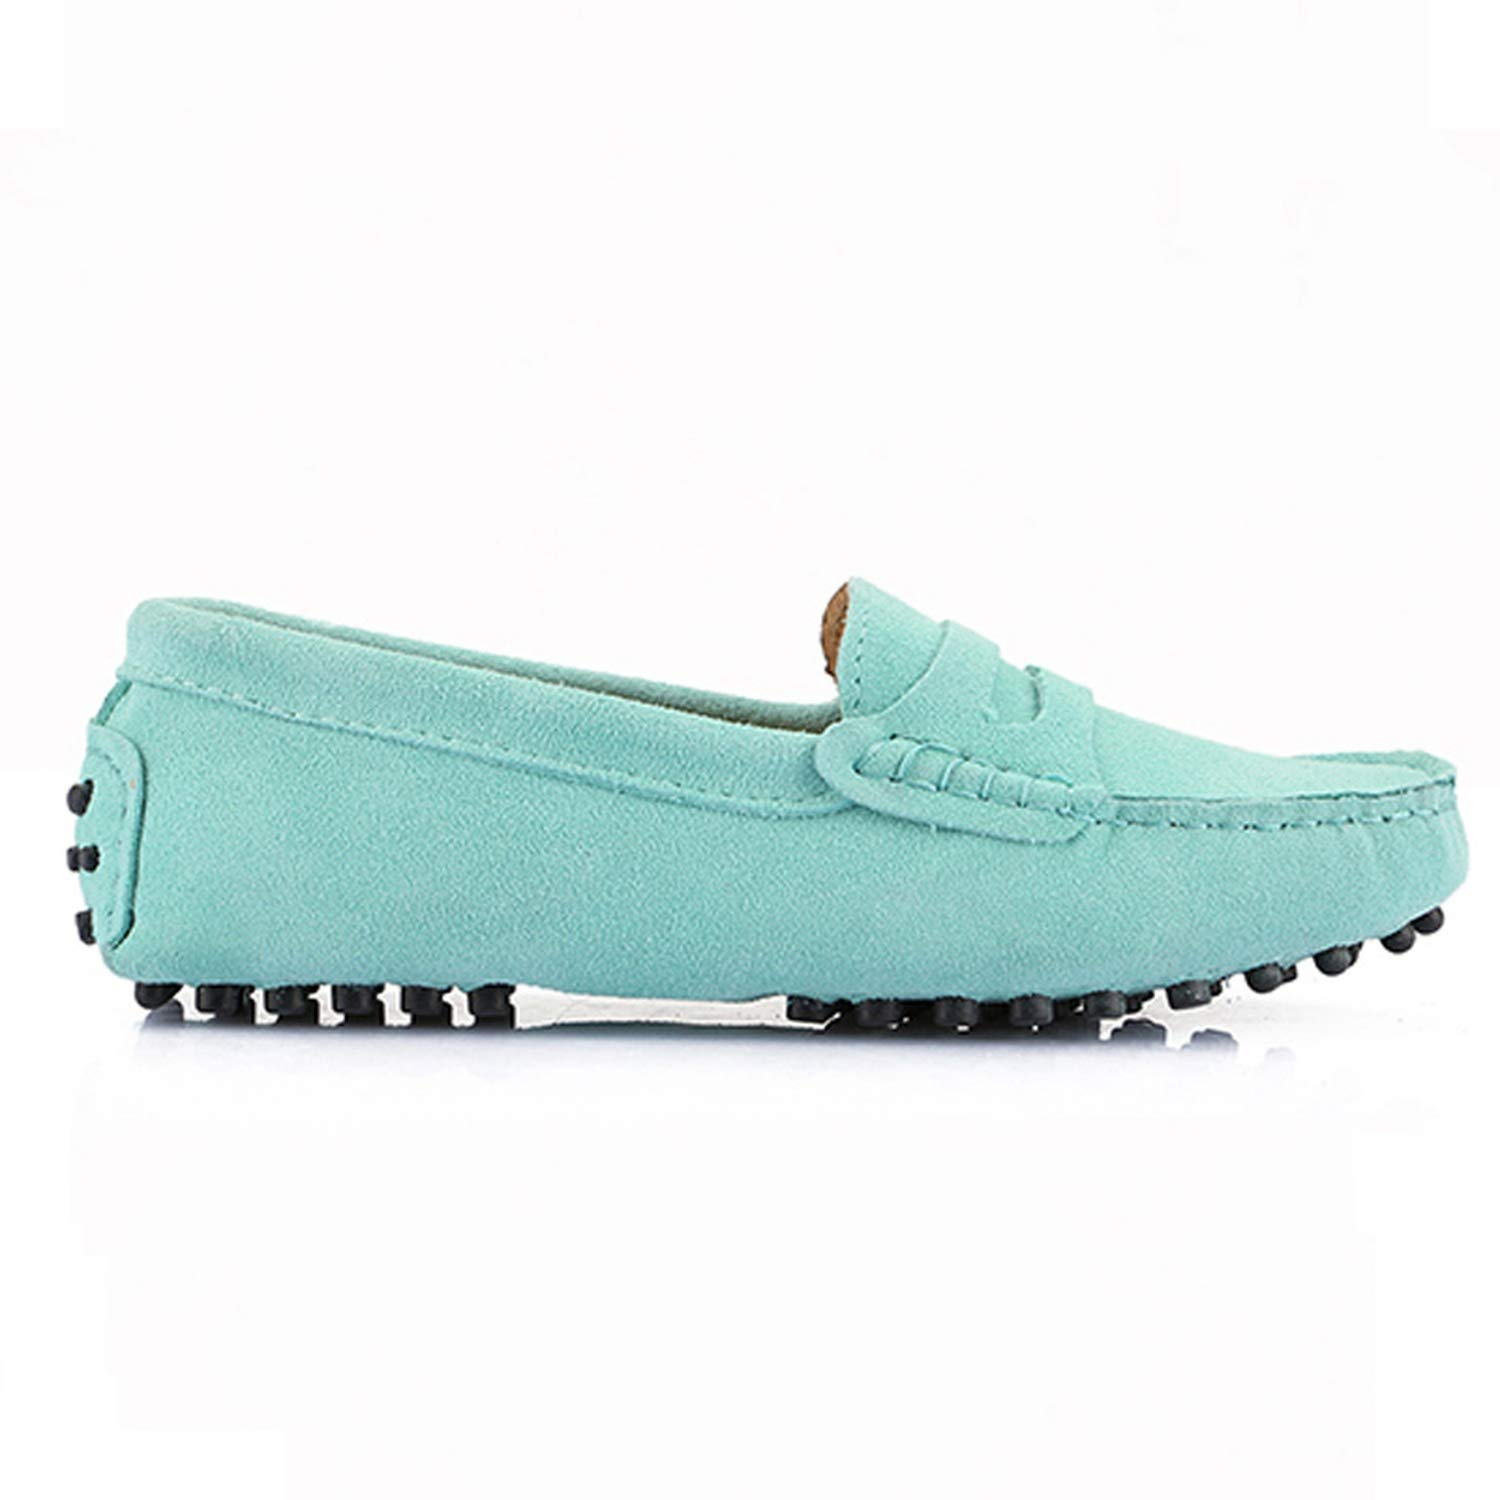 Lake Green Women's Woman shoes Flats Casual Loafers Soft Slip On Moccasins Lady Driving shoes